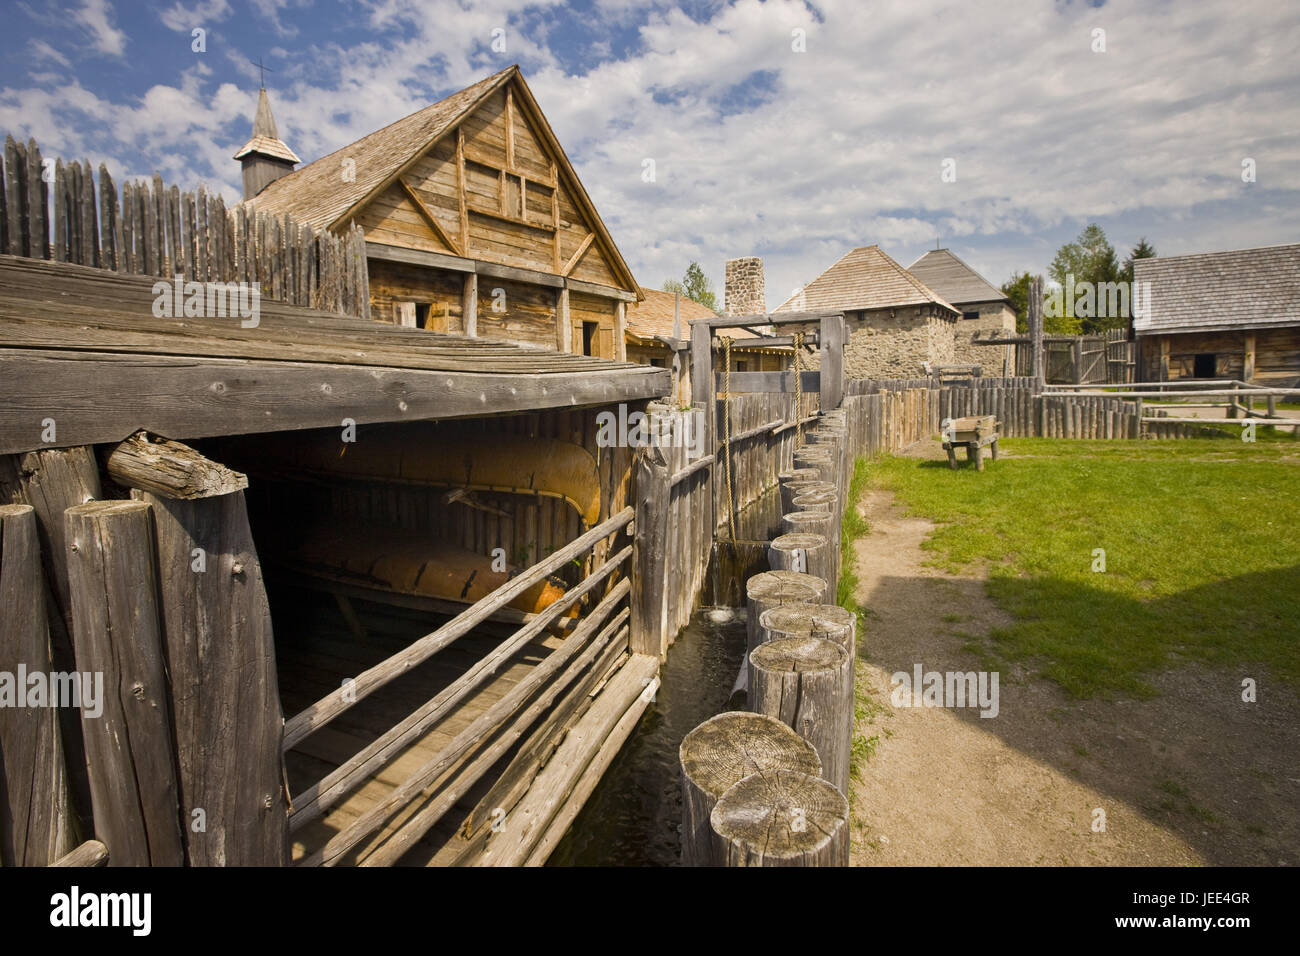 Canada, Ontario, Midland, Sainte-Marie among the Hurons, timber houses, boathouse, canoes, - Stock Image